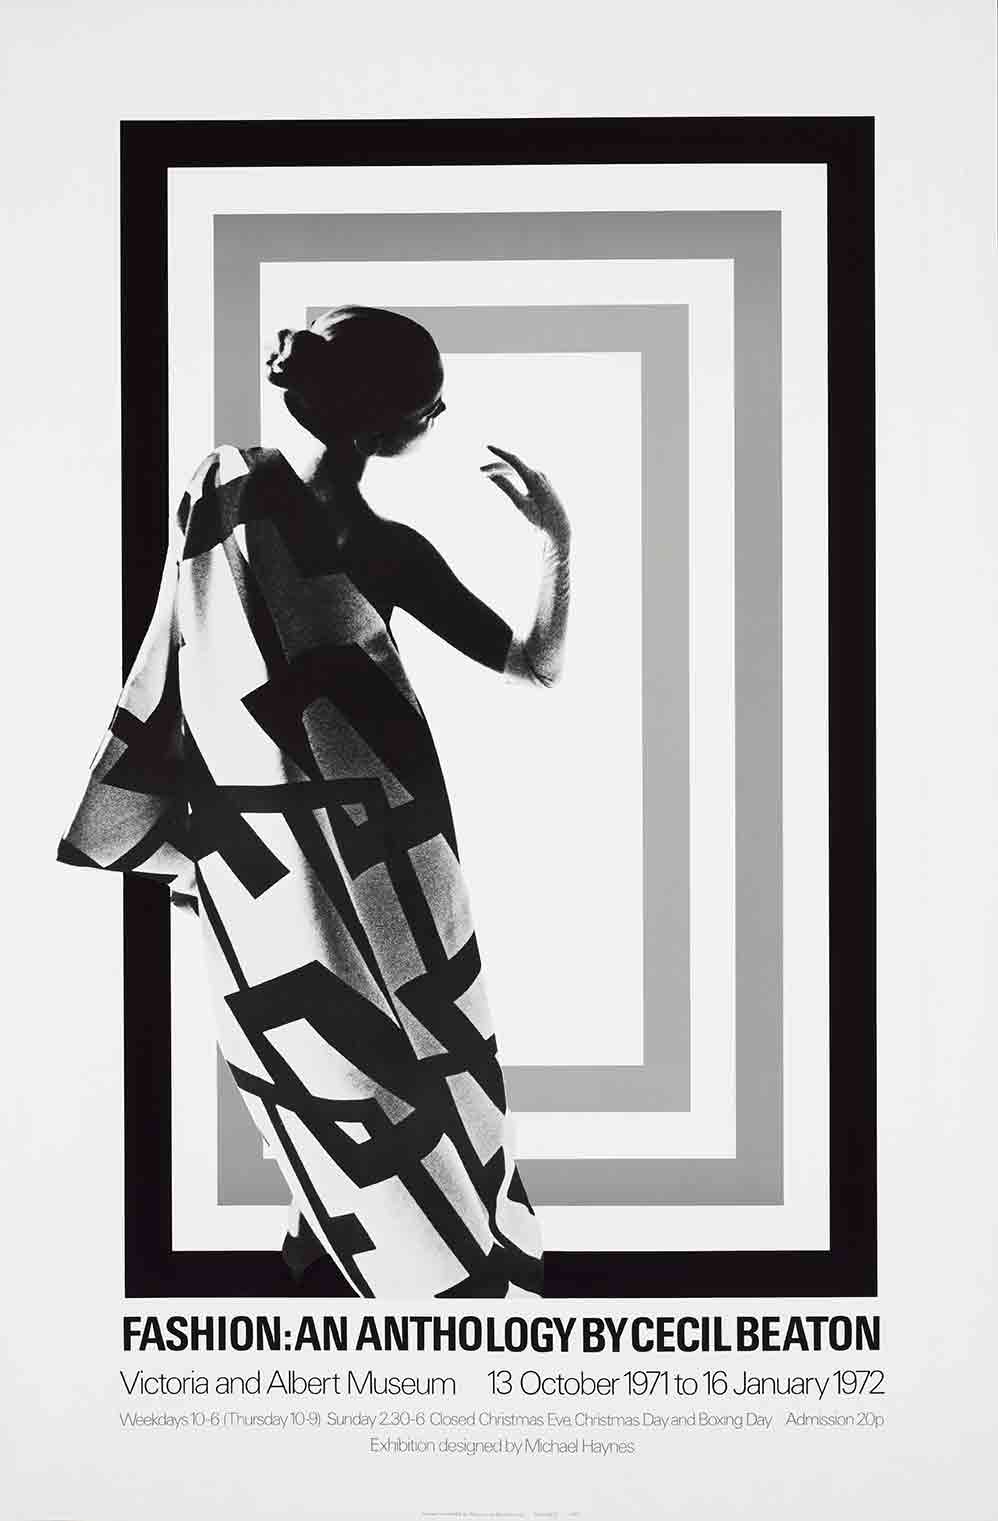 Fashion: An Anthology by Cecil Beaton exhibition poster (custom print)